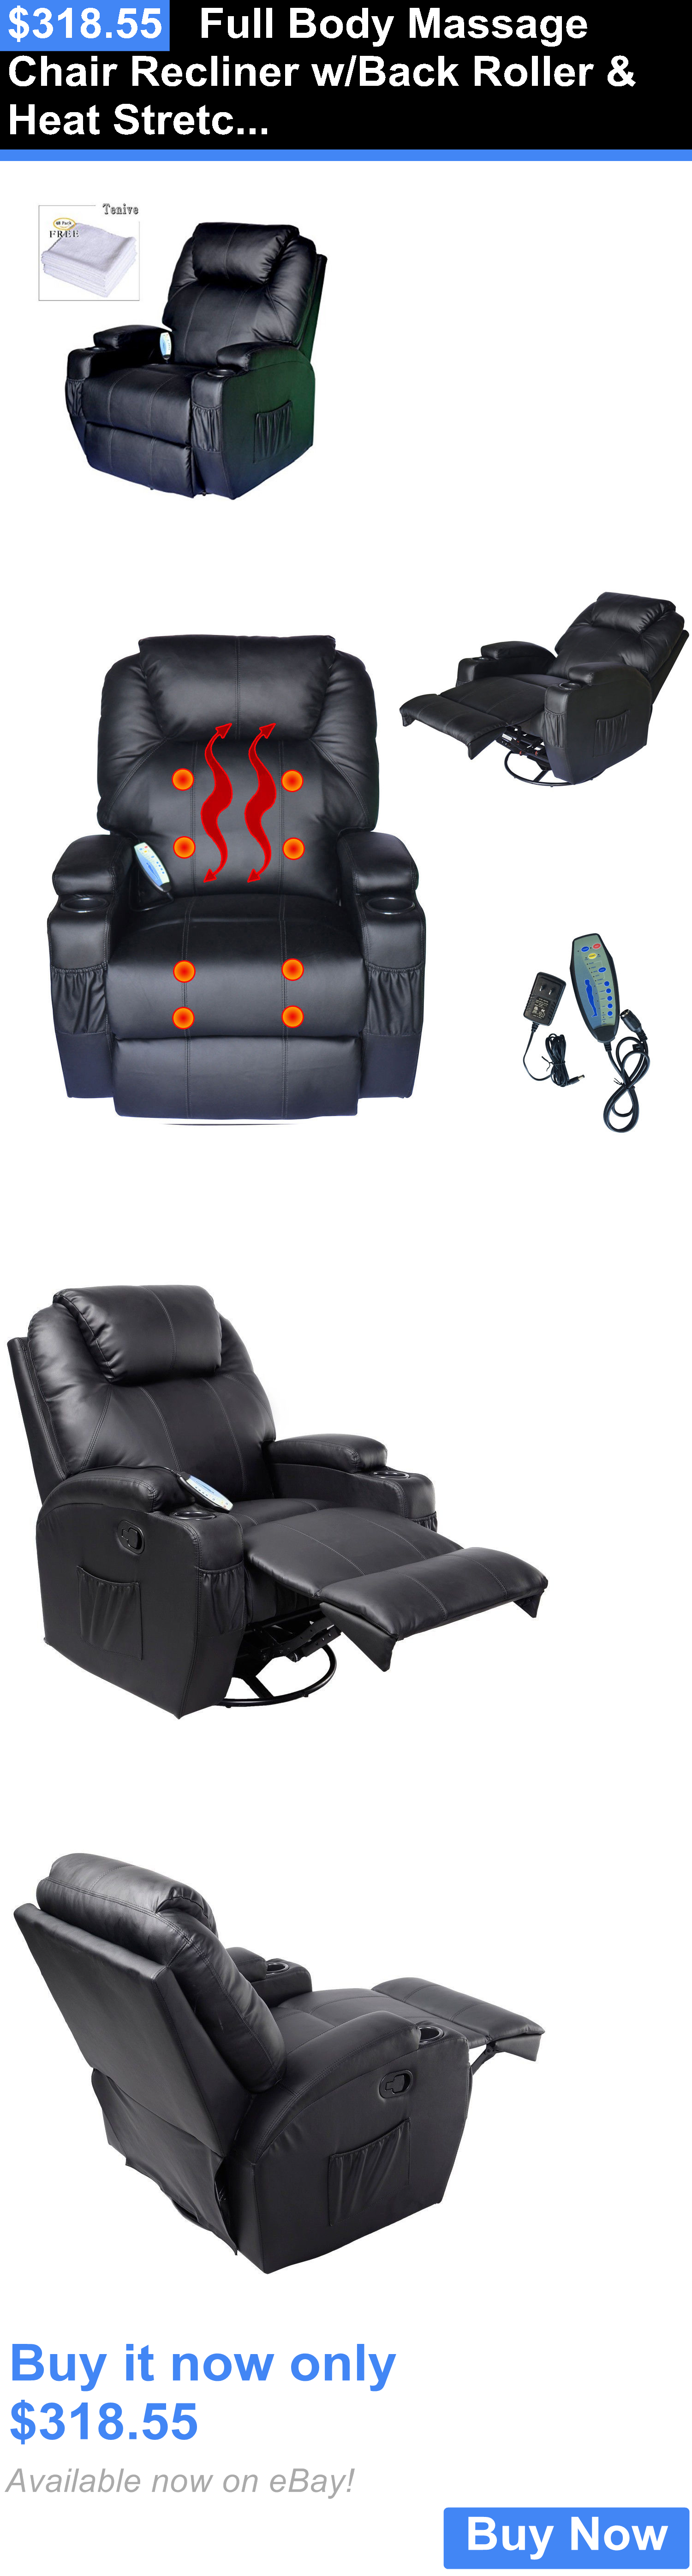 Permalink to Awesome Full Body Massaging Chair Pictures